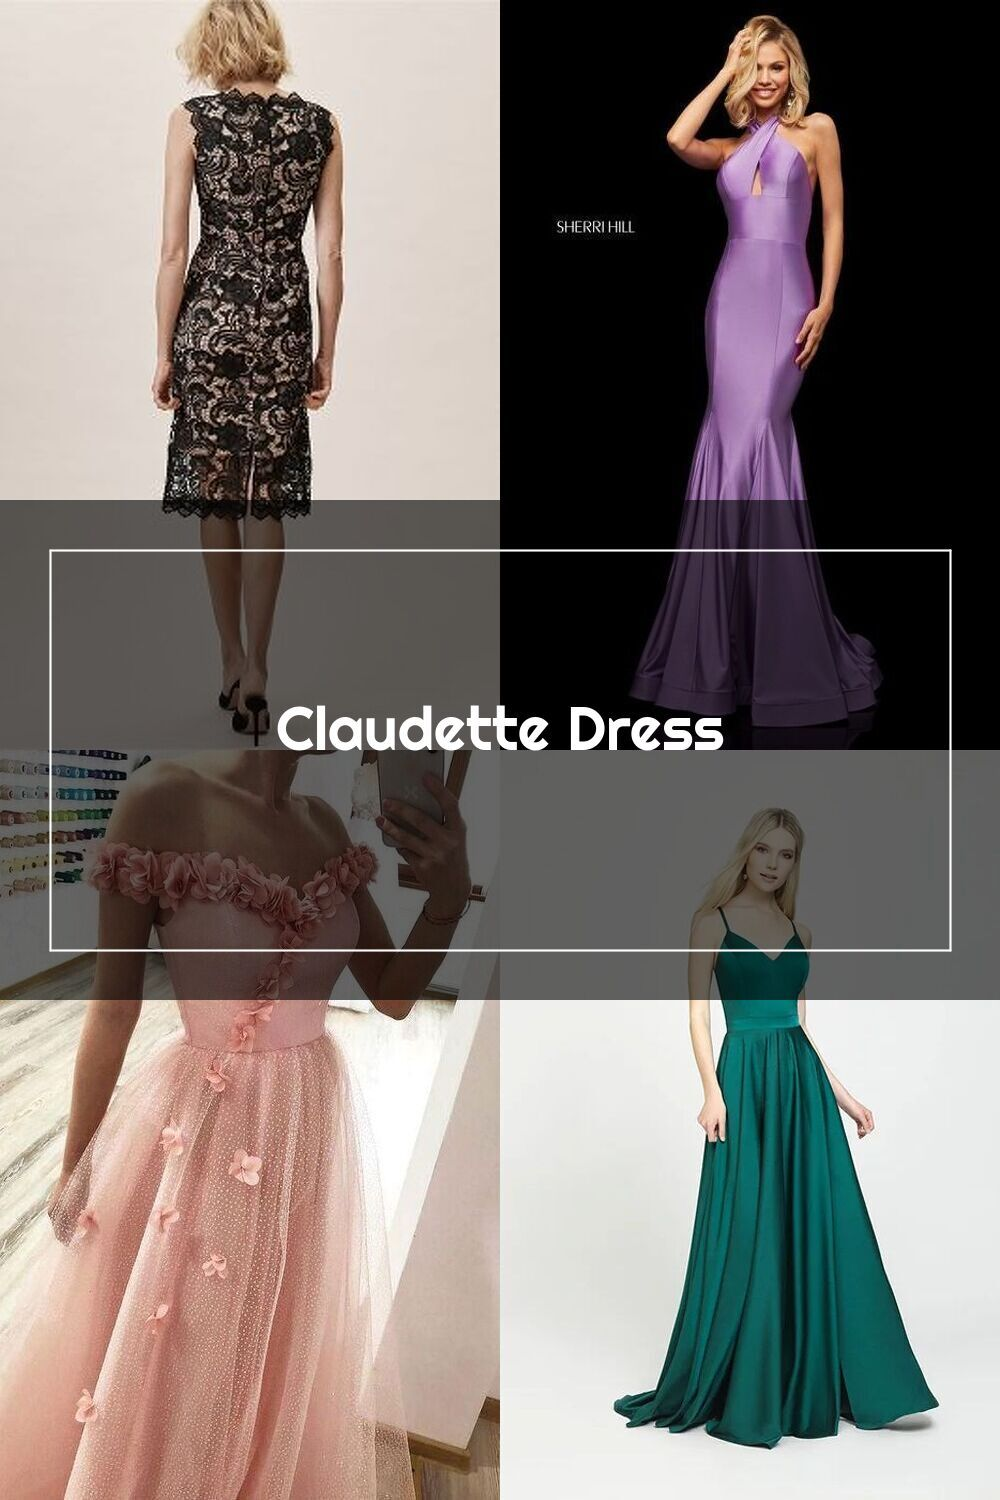 Shopping for Dresses for Special Occasions